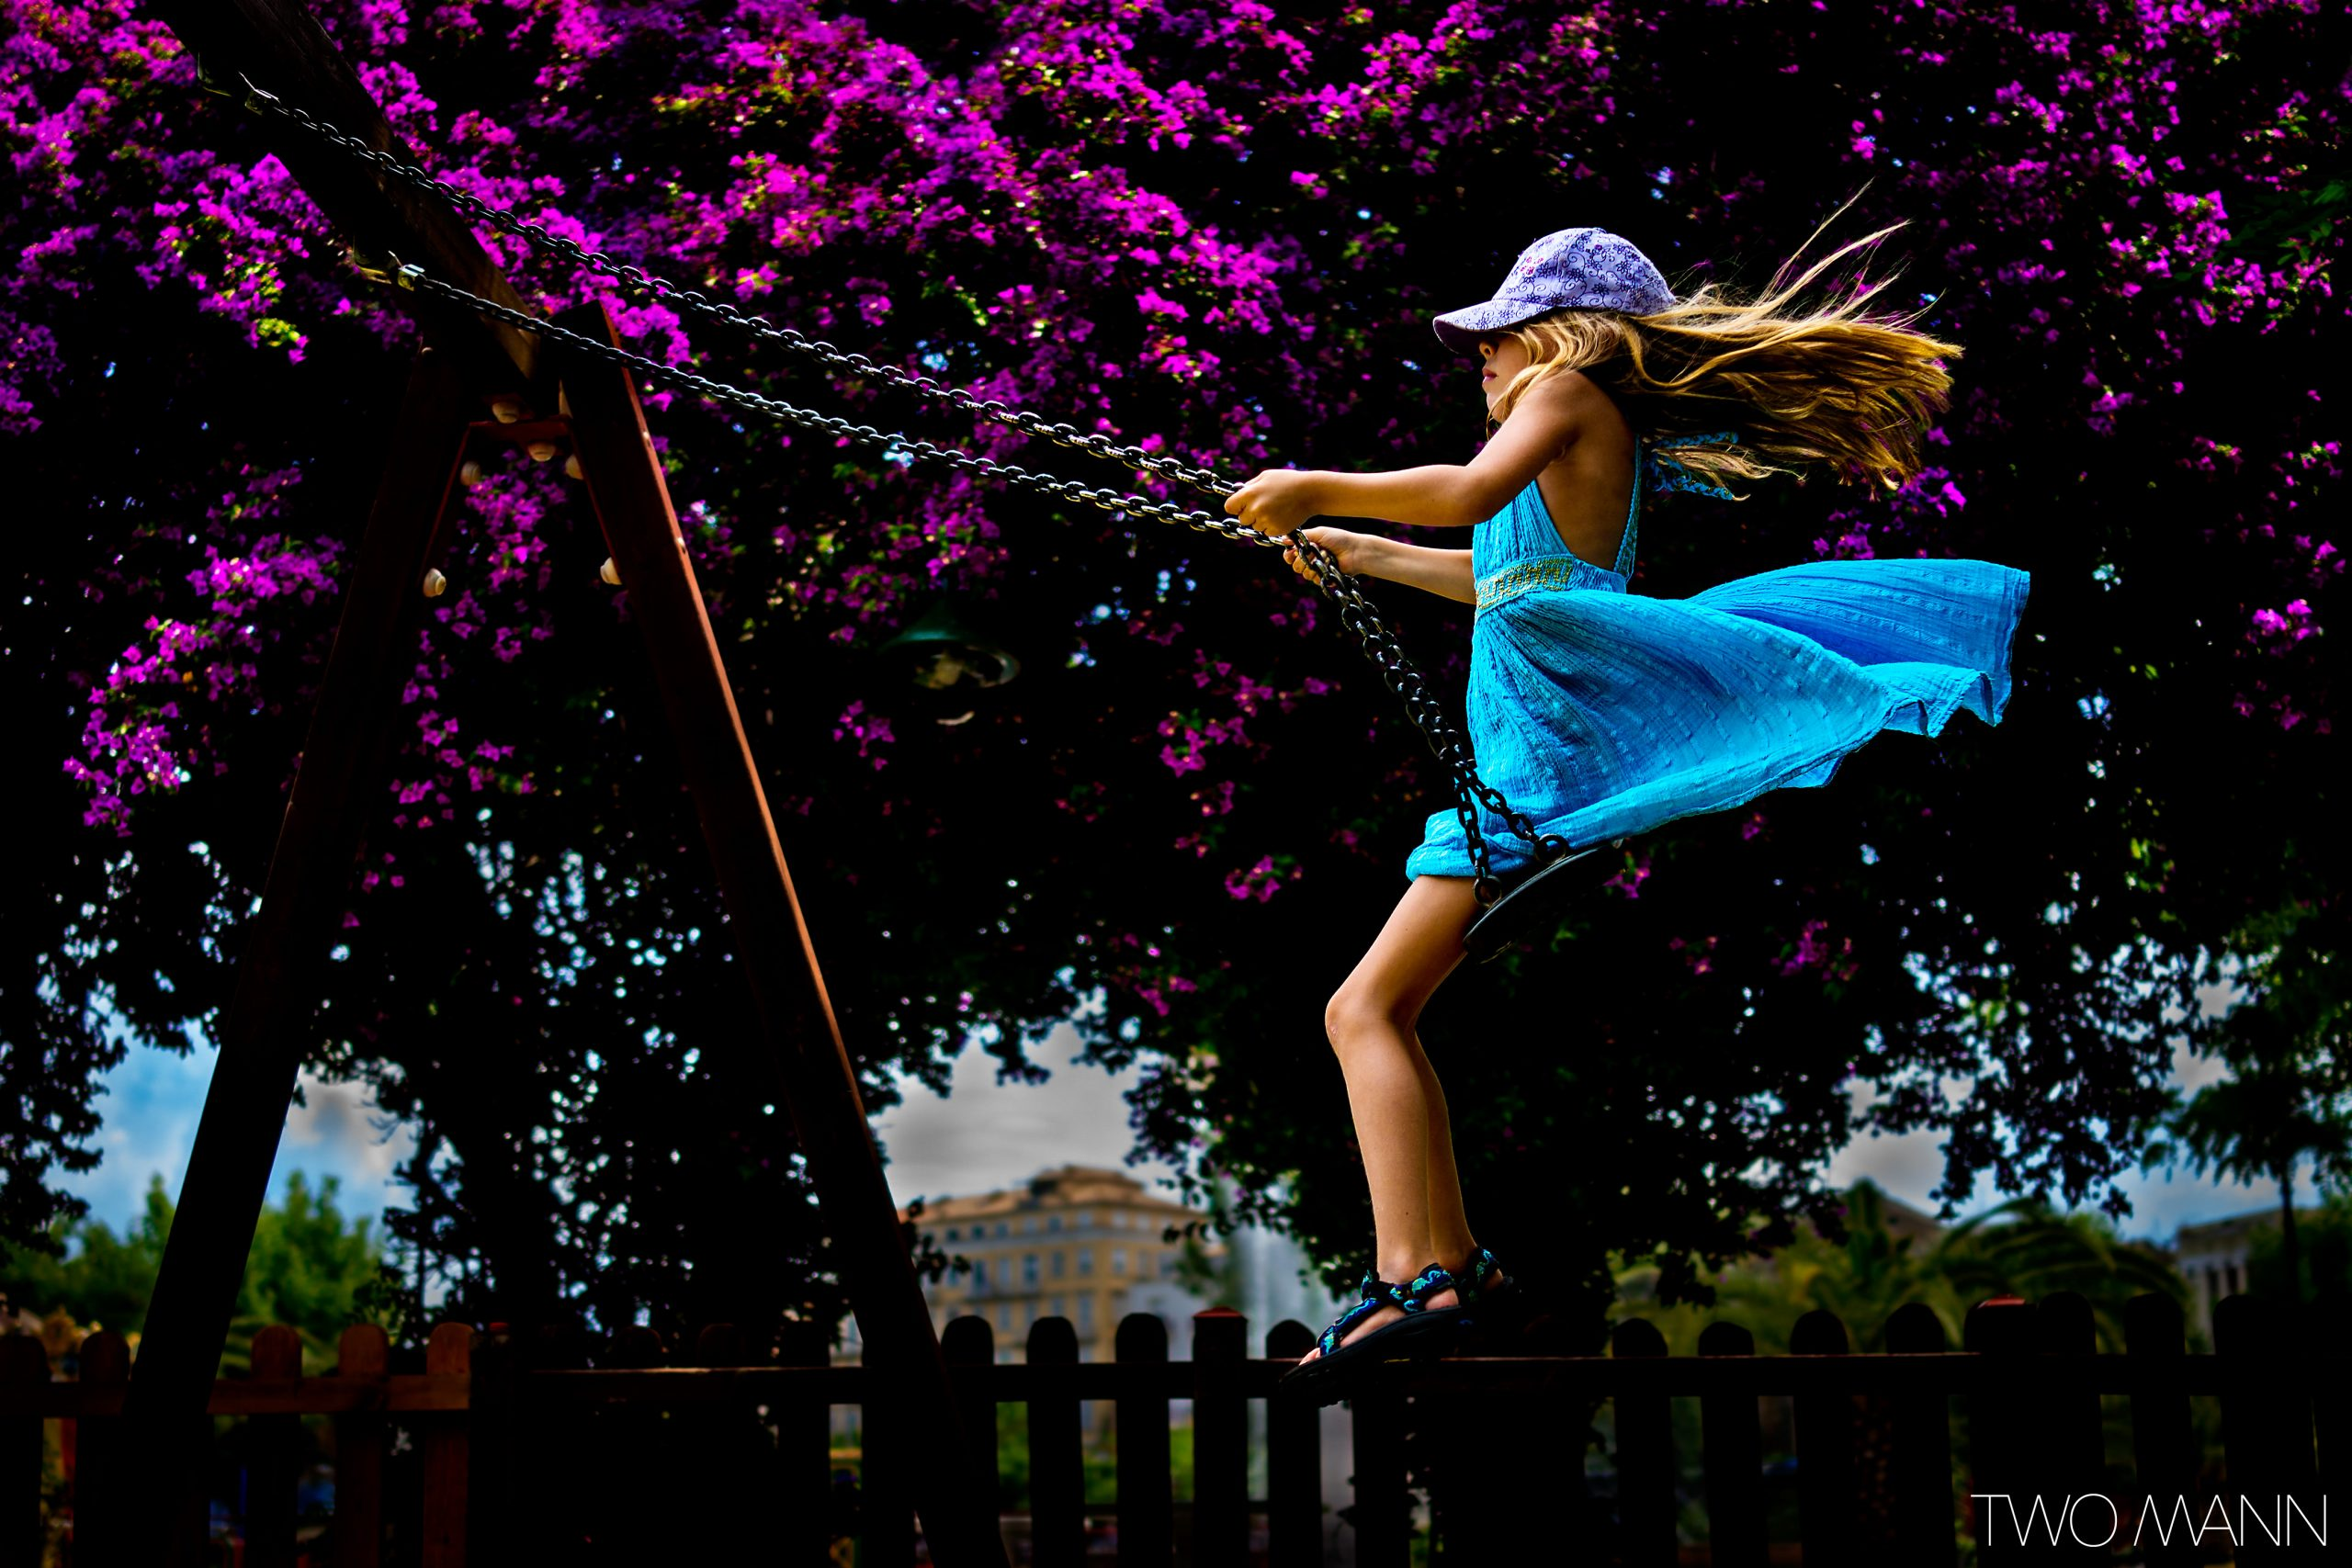 Girl swinging on swing in front of giant tree with violet flowers